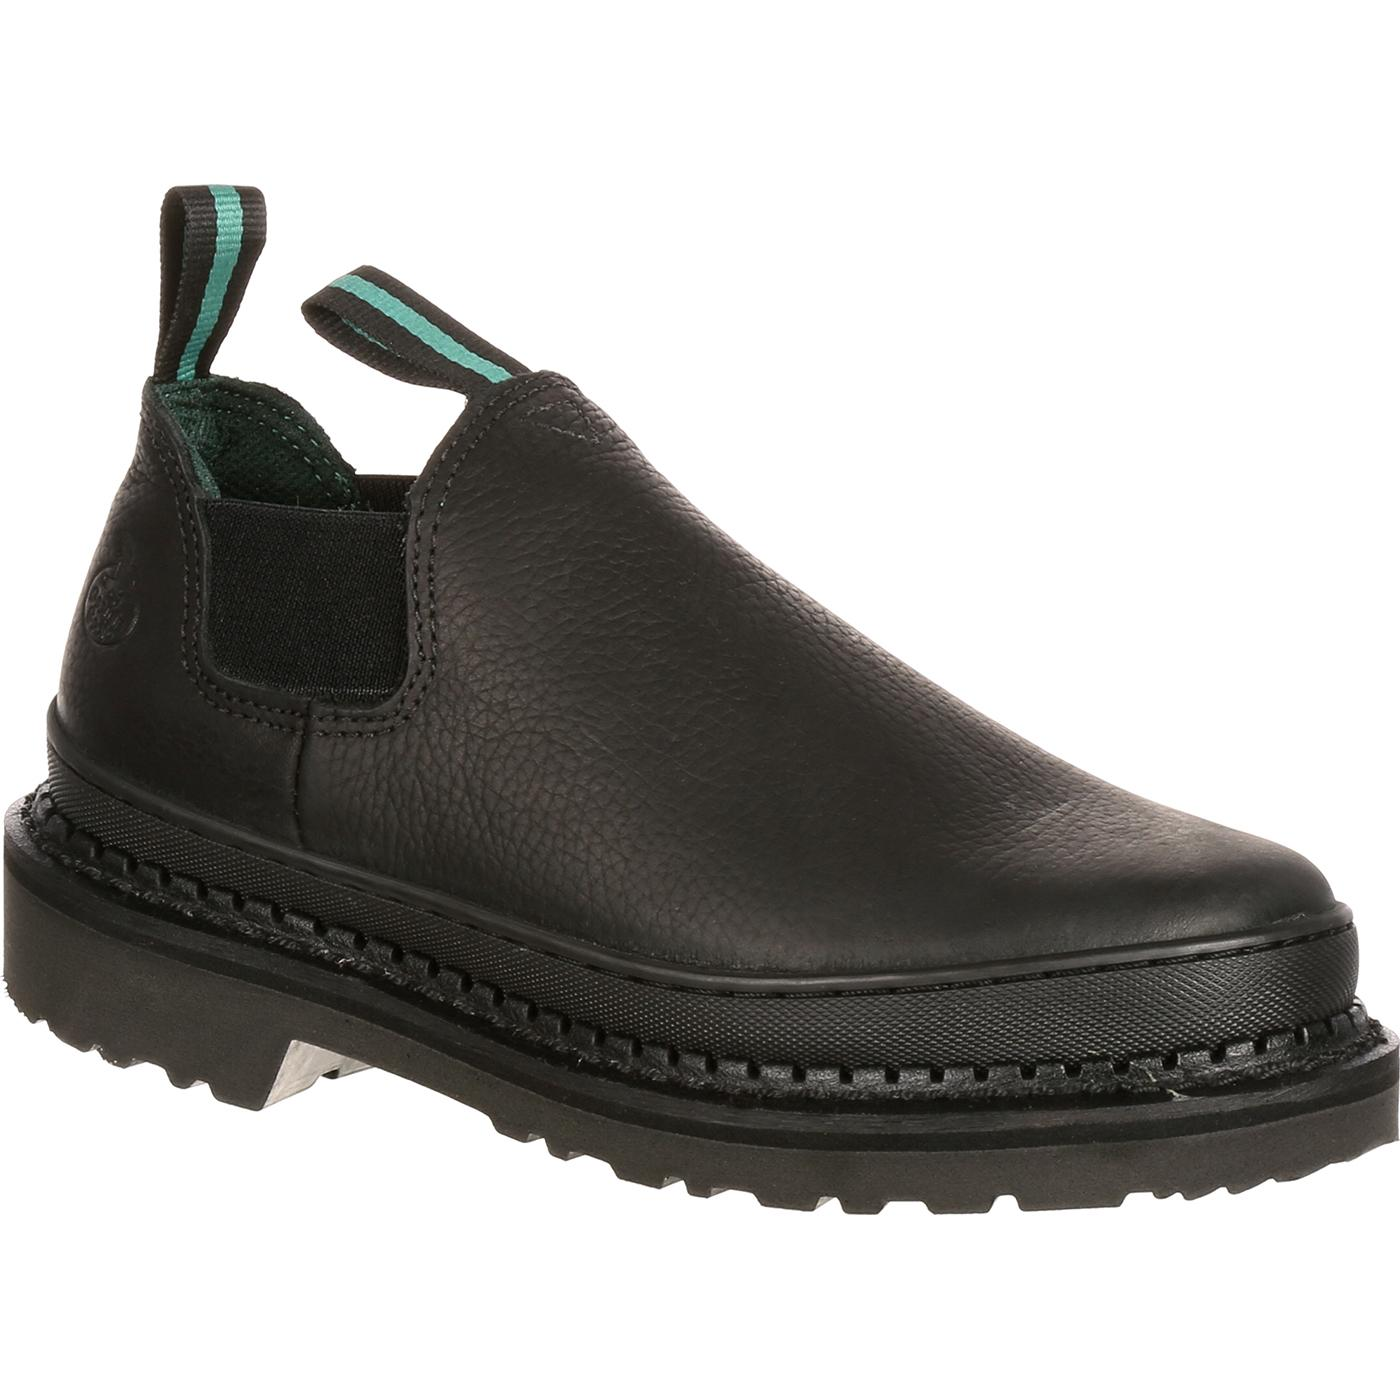 064133aebf95 Men s Black Leather Slip-On Romeo Work Shoes